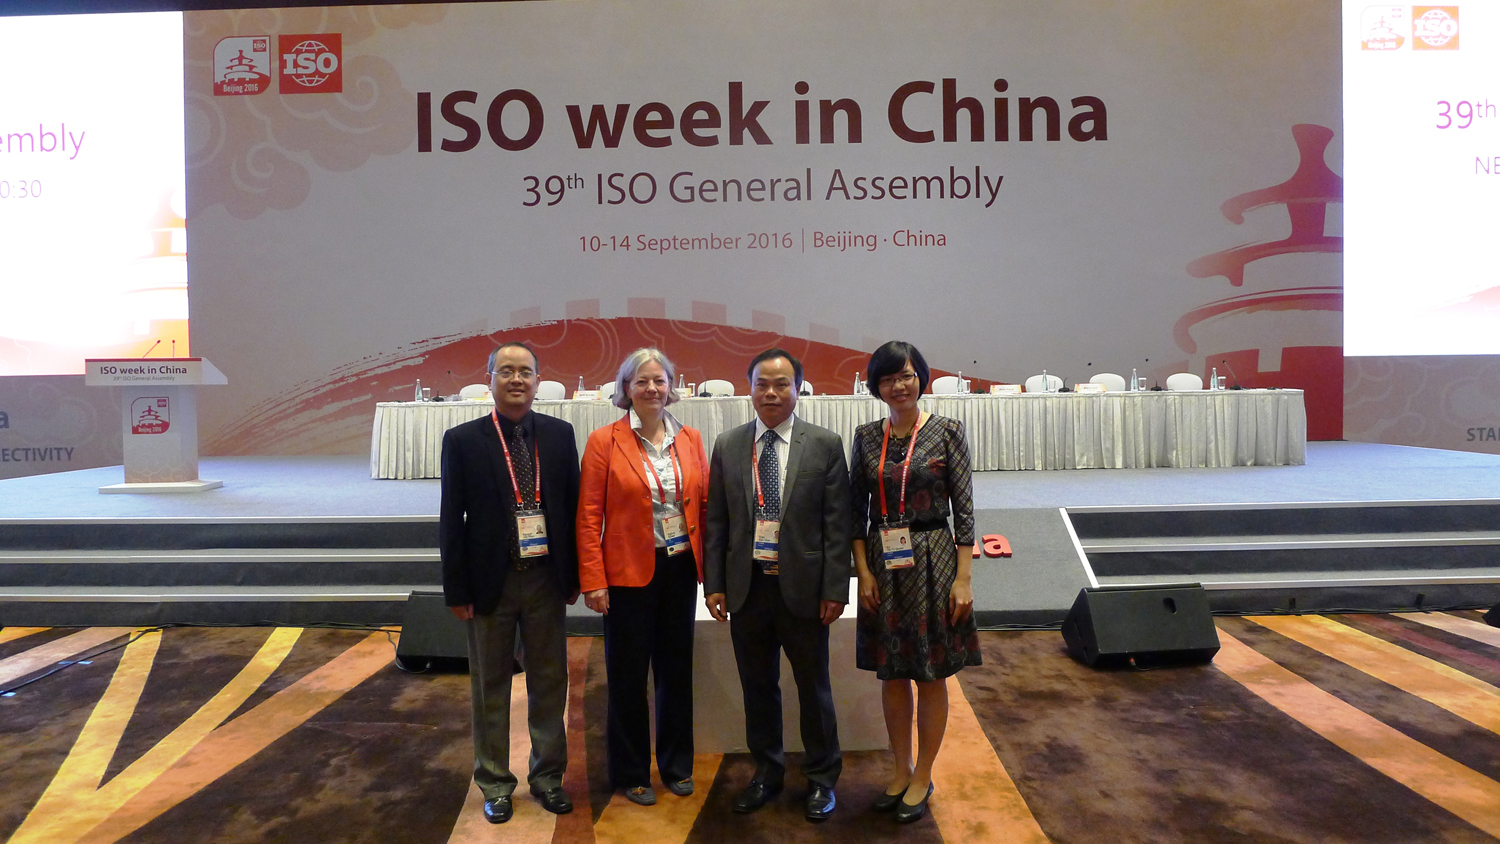 Viet Nam delegation attended 39th ISO General Assembly in China